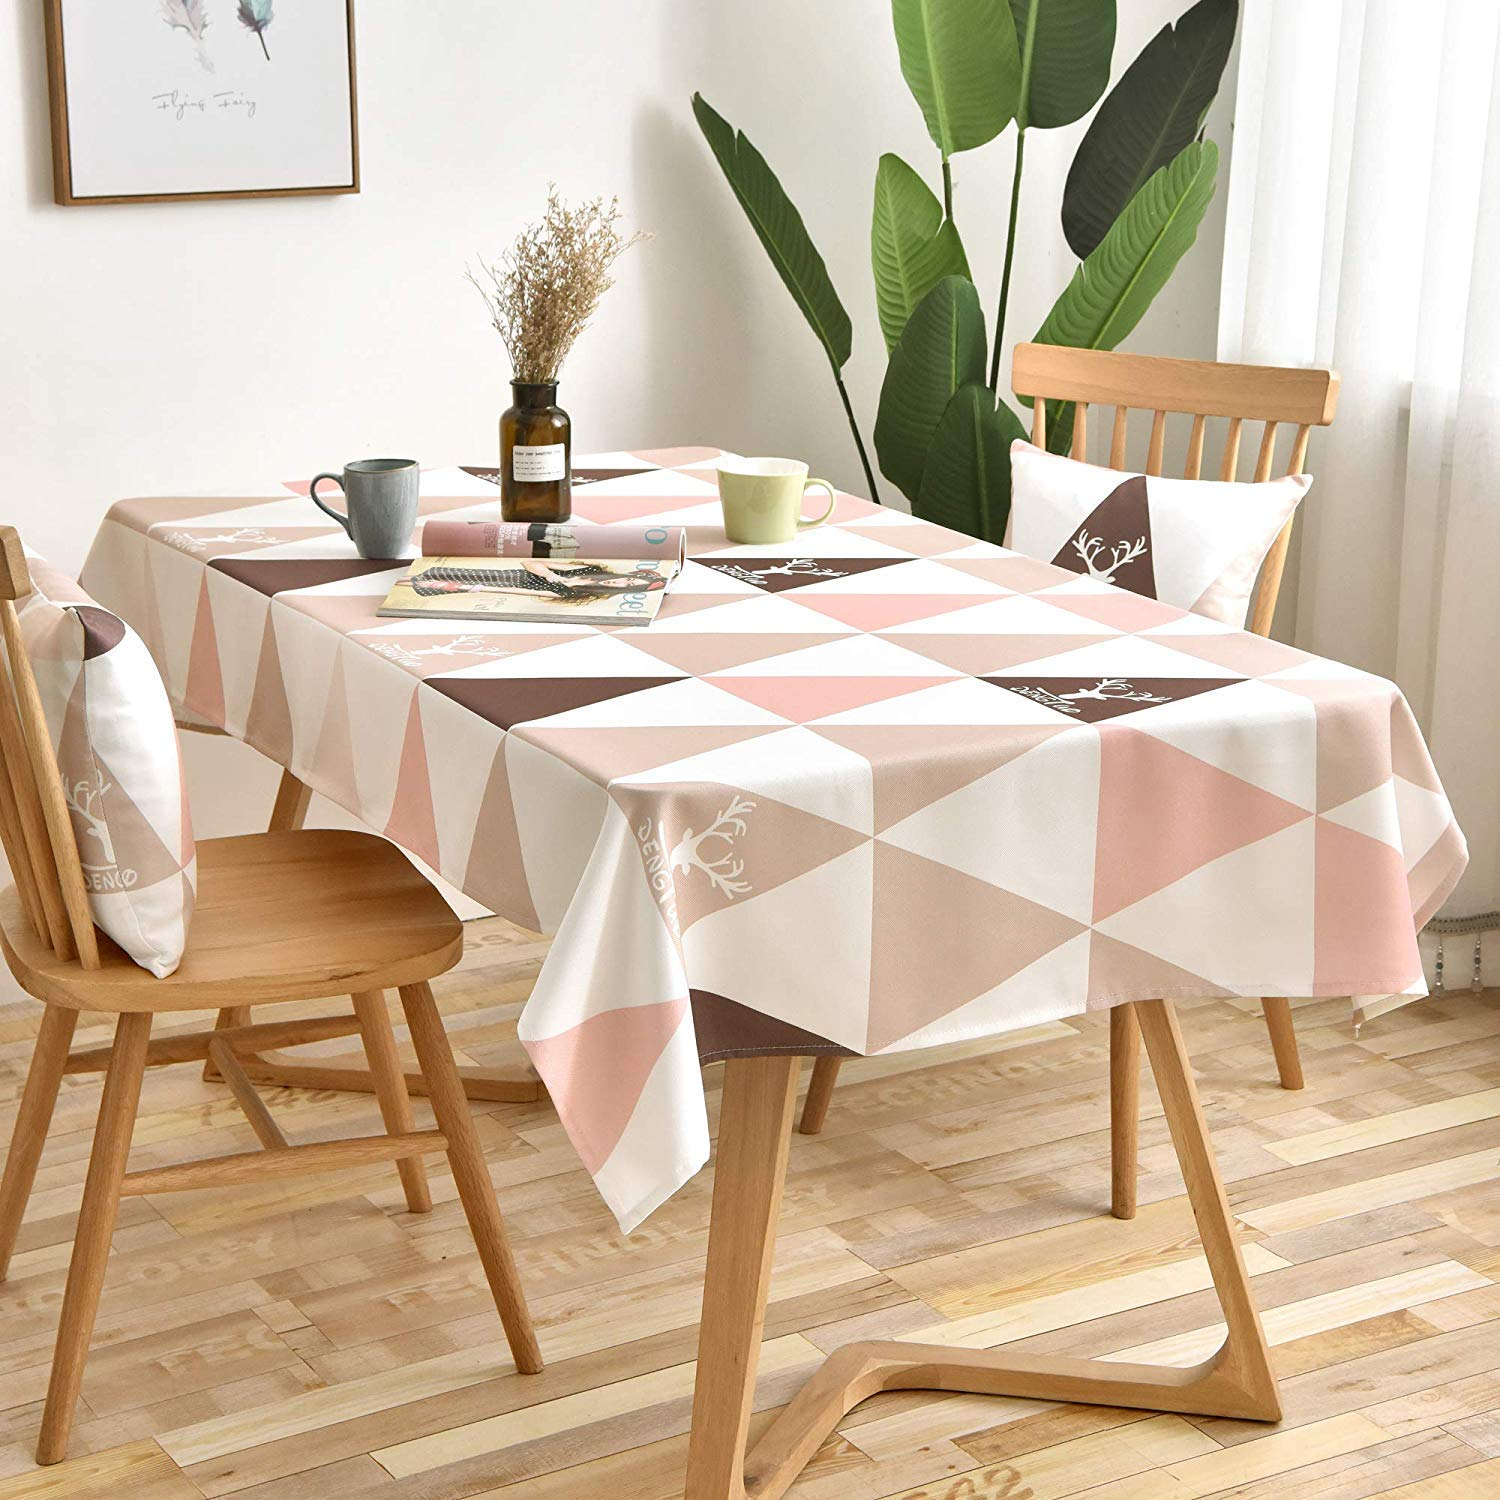 MODERN HOMES Printed Cotton Tablecloth for Dining Table, Patio Table,  Picnic Table, Hotel Buffet Table; Blush Pink Table Cover 27x27 inches (27  Seater)